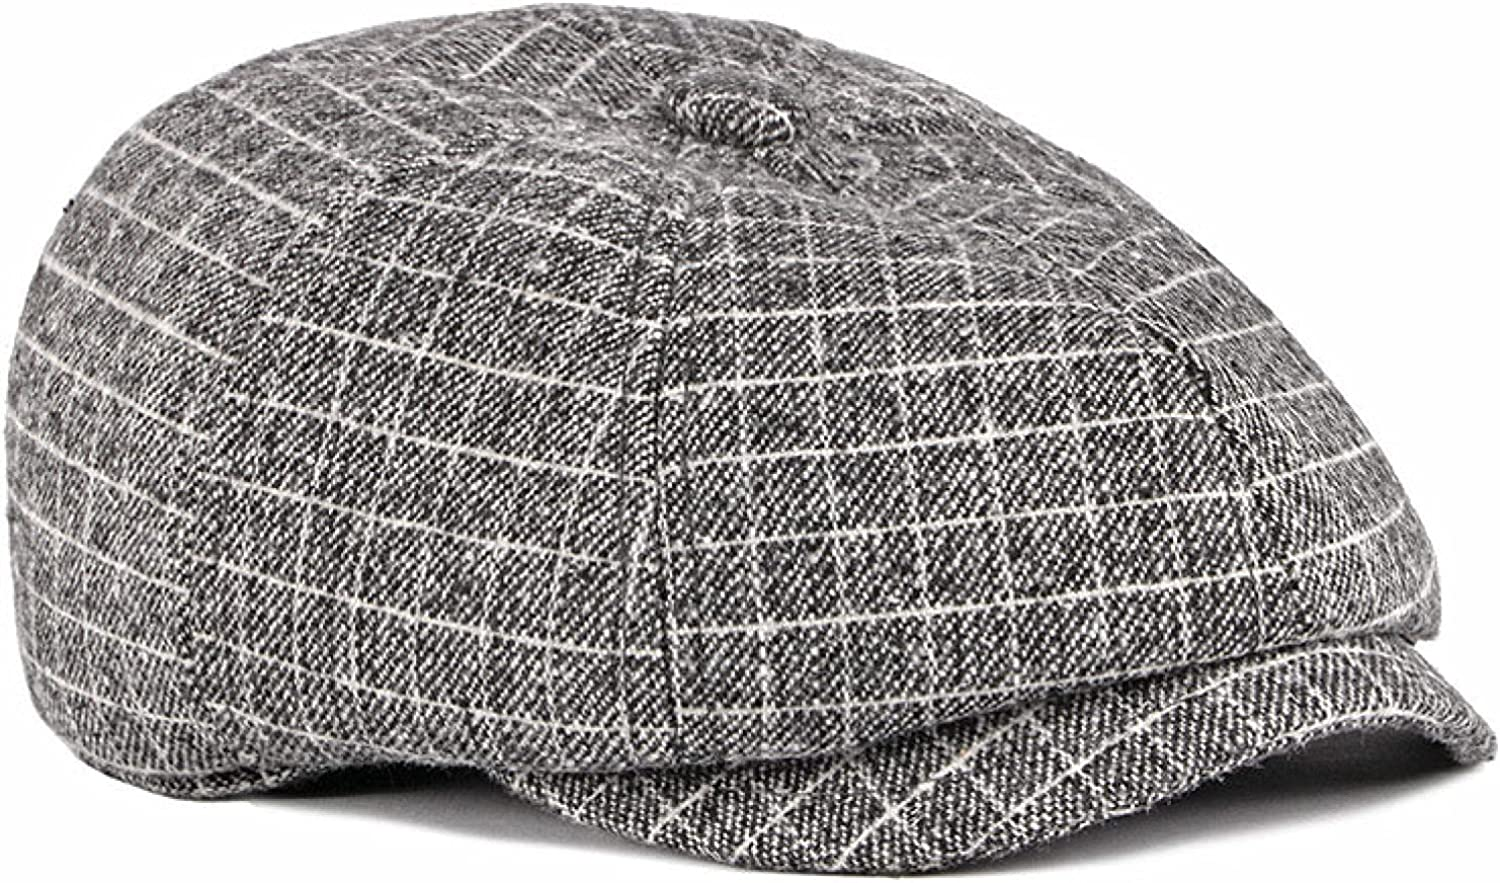 French Wool Newsboy Caps for Men Middle Old Aged Flat Top Ivy Beret Warm Ear Protection Octagonal Cap